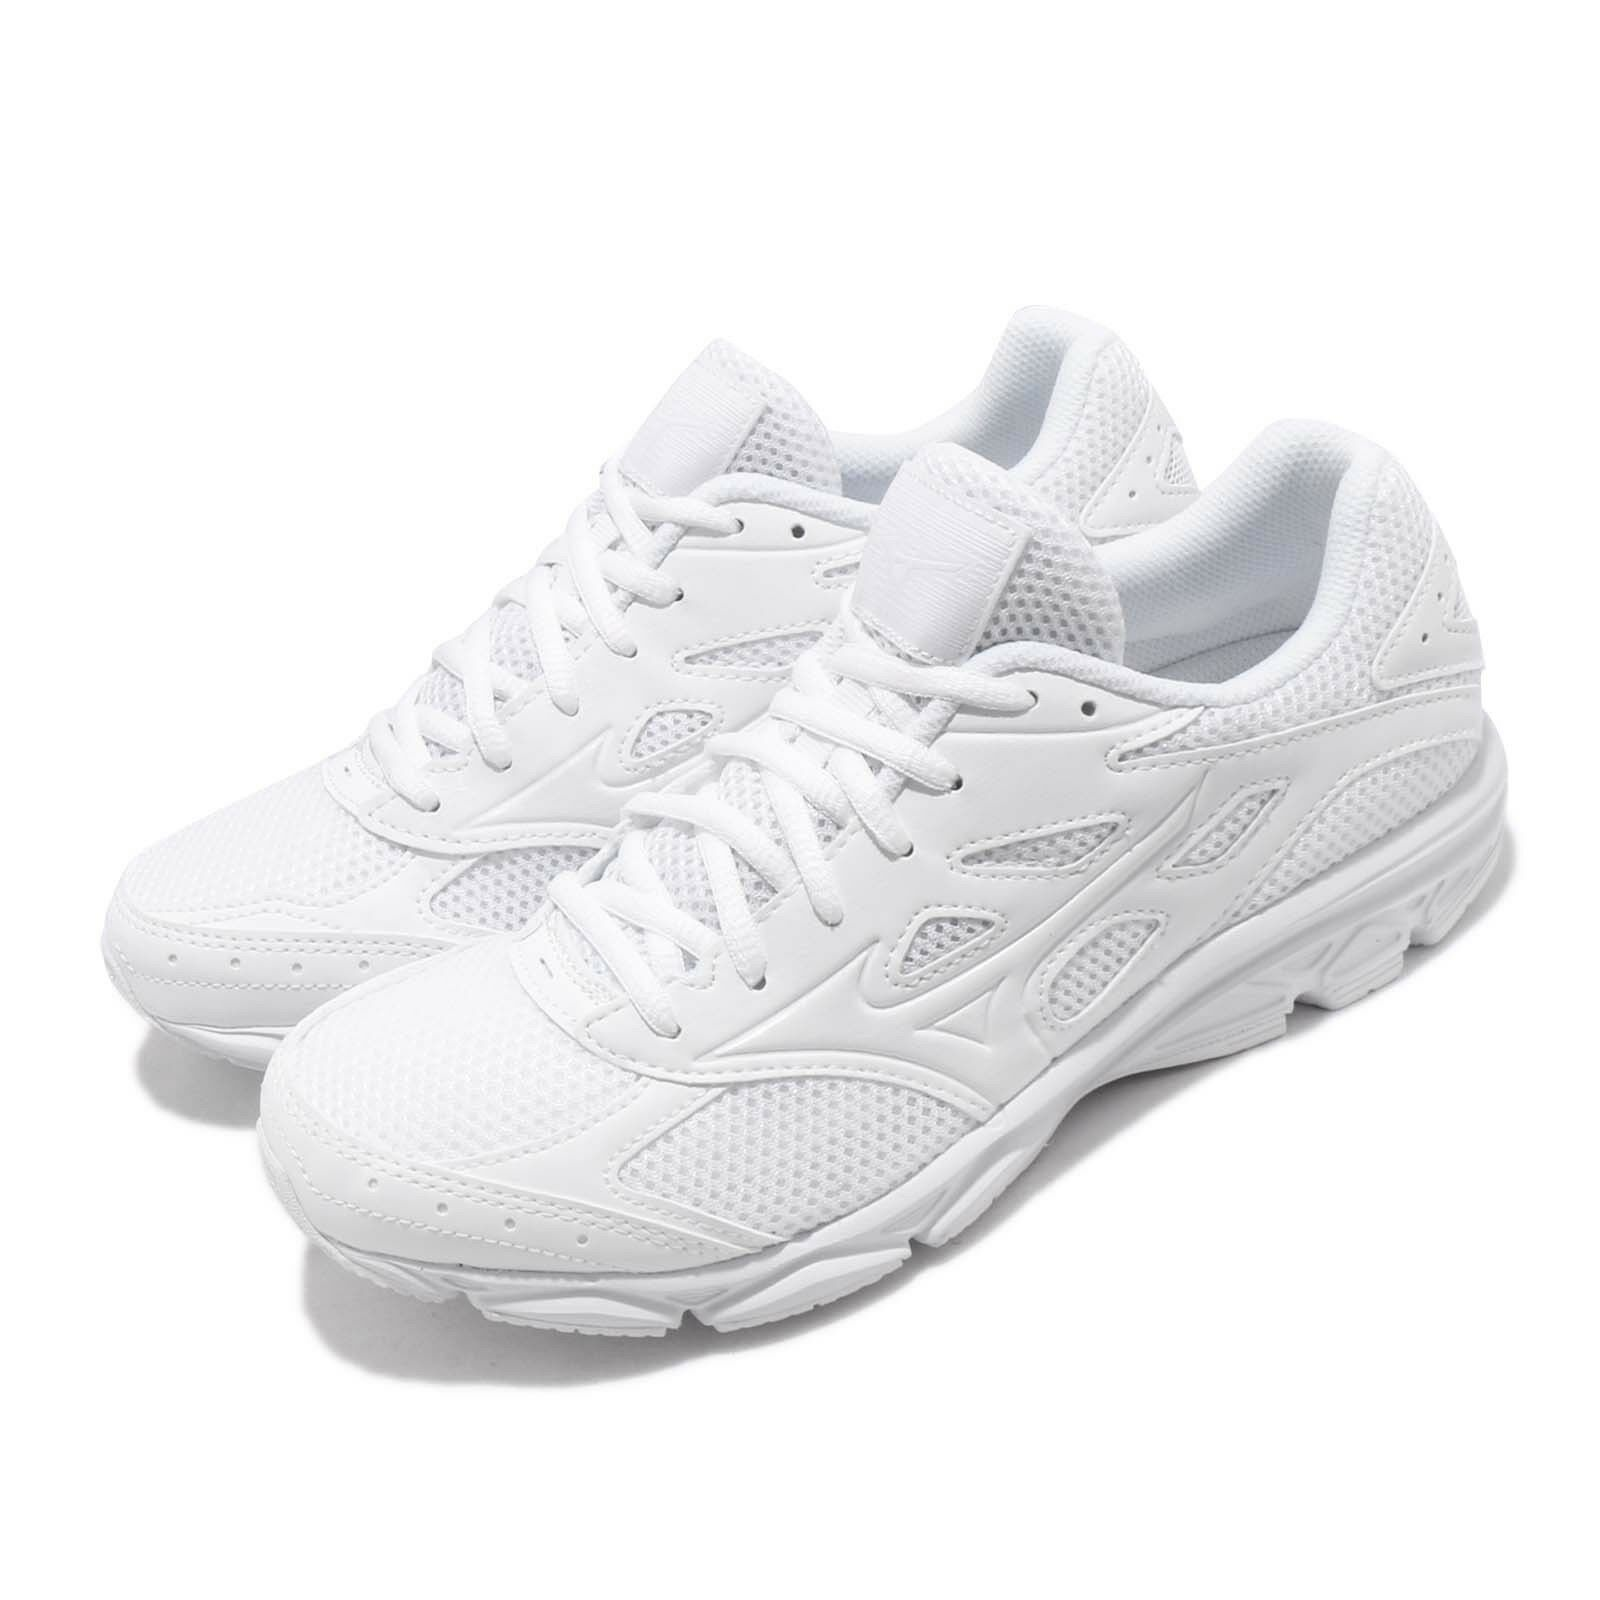 Mizuno Maximizer 21 Wide Triple White Men Running shoes Sneakers K1GA1902-01